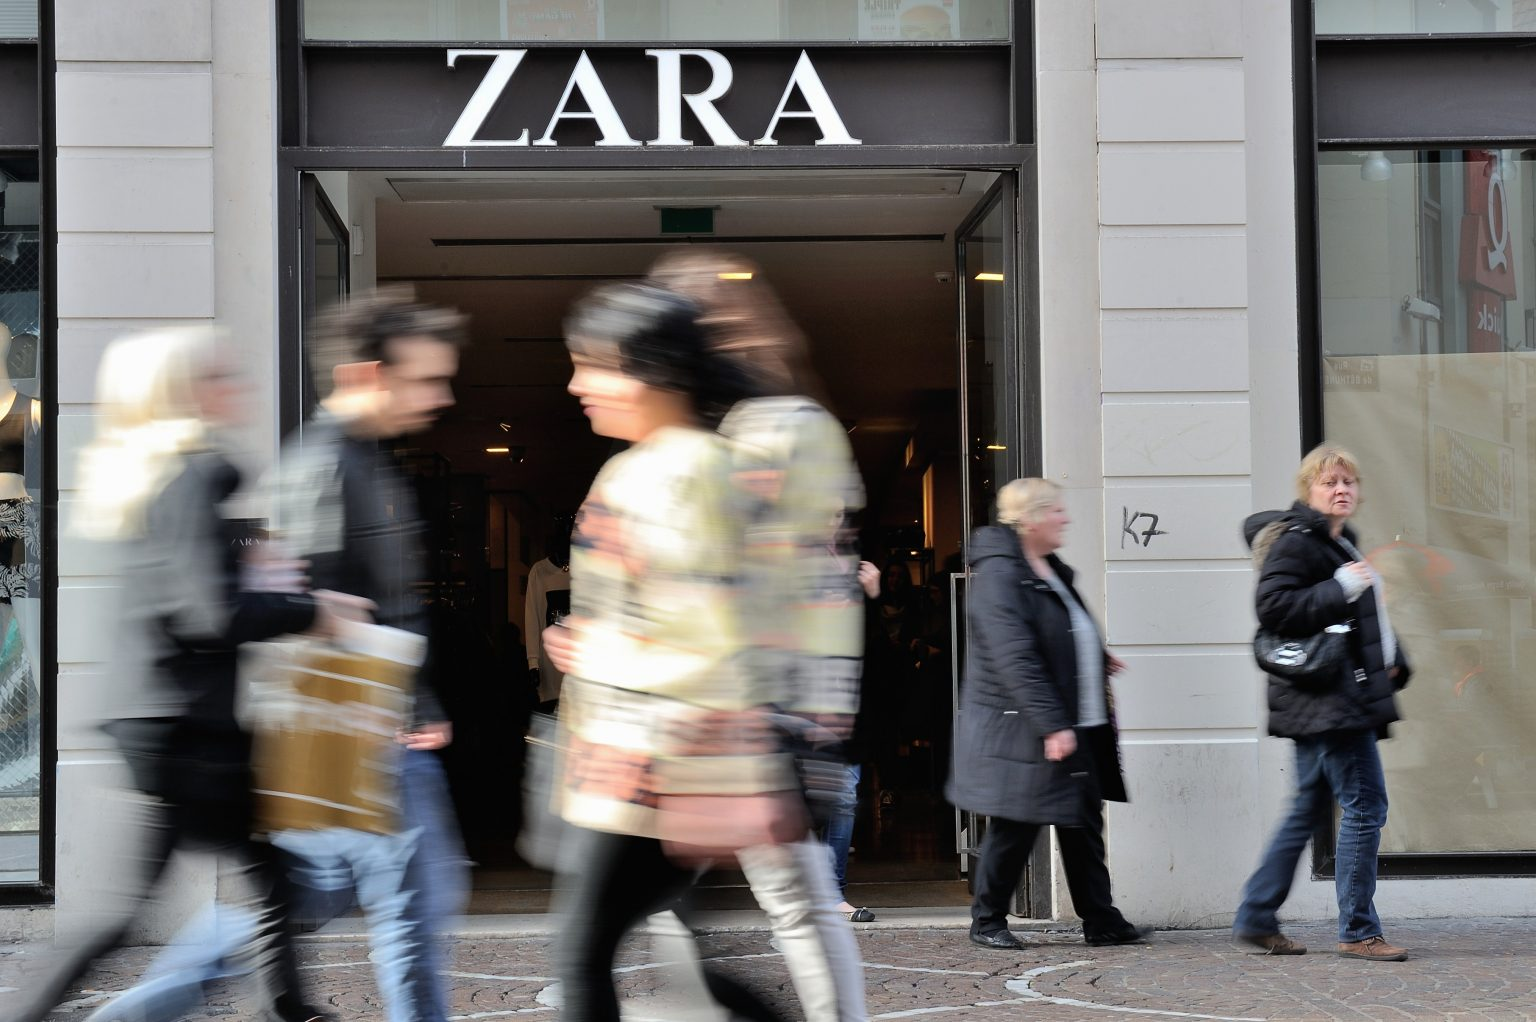 Despite all that, Inditex, the parent company of Zara, decided to close the shop and not reducing salaries or losing jobs